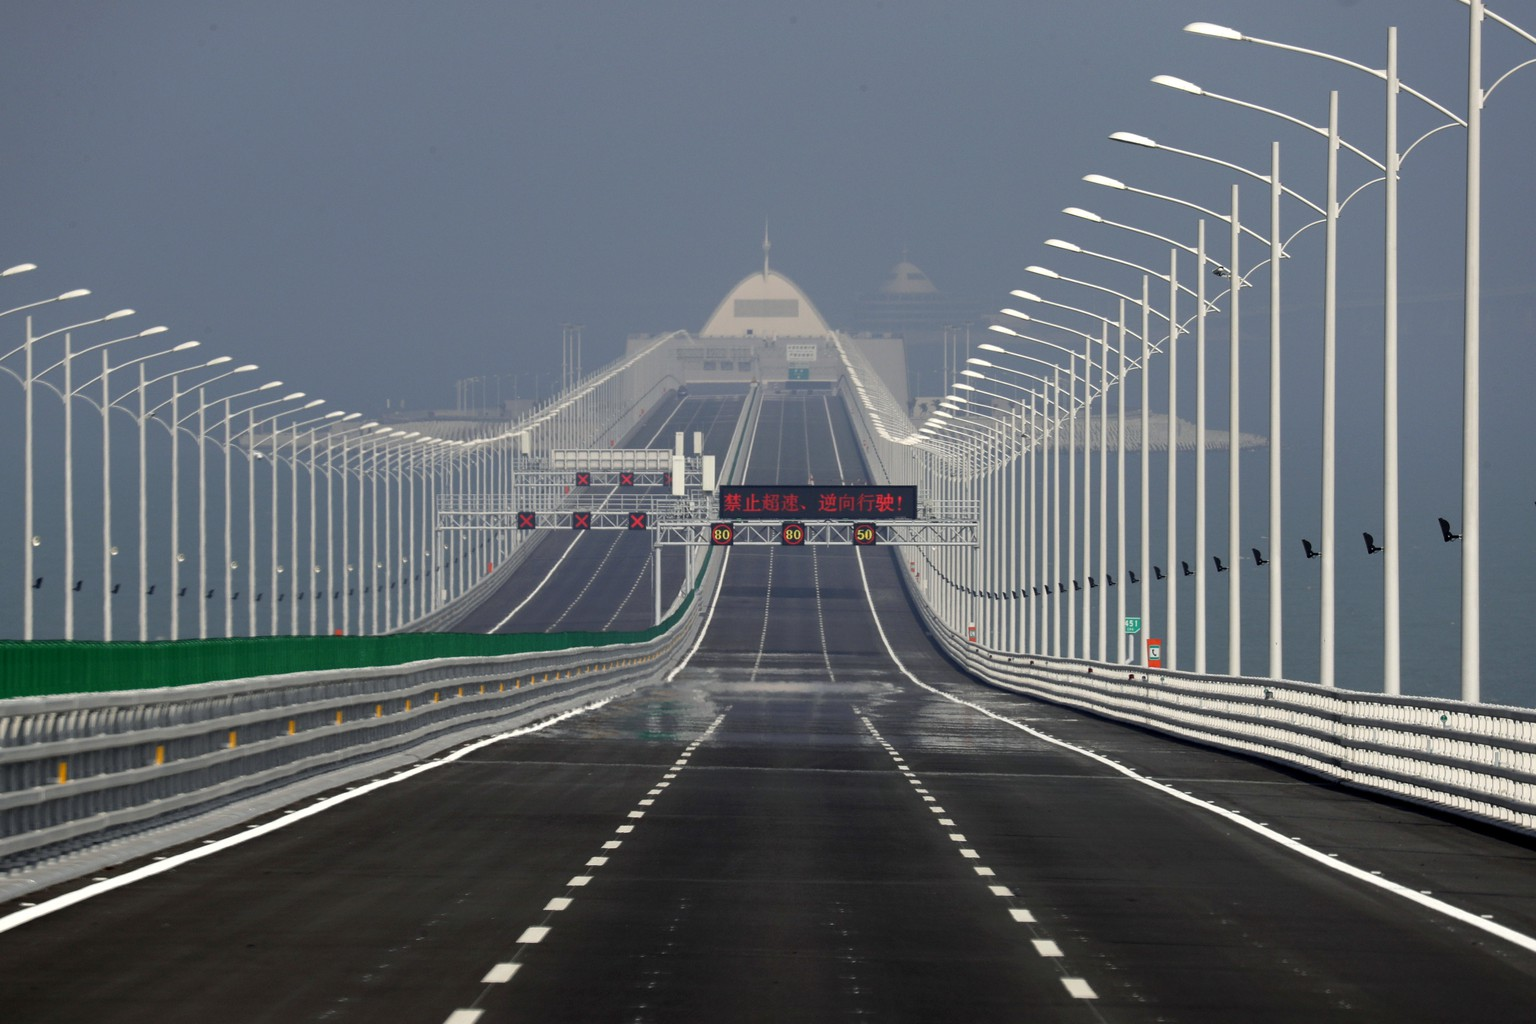 The Hong Kong-Zhuhai-Macau Bridge is seen, in Zhuhai city, south China's Guangdong province, Wednesday, March 28, 2018. The Hong Kong-Zhuhai-Macau Bridge, the world's longest cross-sea project, which has a total length of 55 kilometers. The main section includes 23 kilometers of bridges, 6.7 kilometers of tunnels, and two artificial islands. (AP Photo/Kin Cheung)